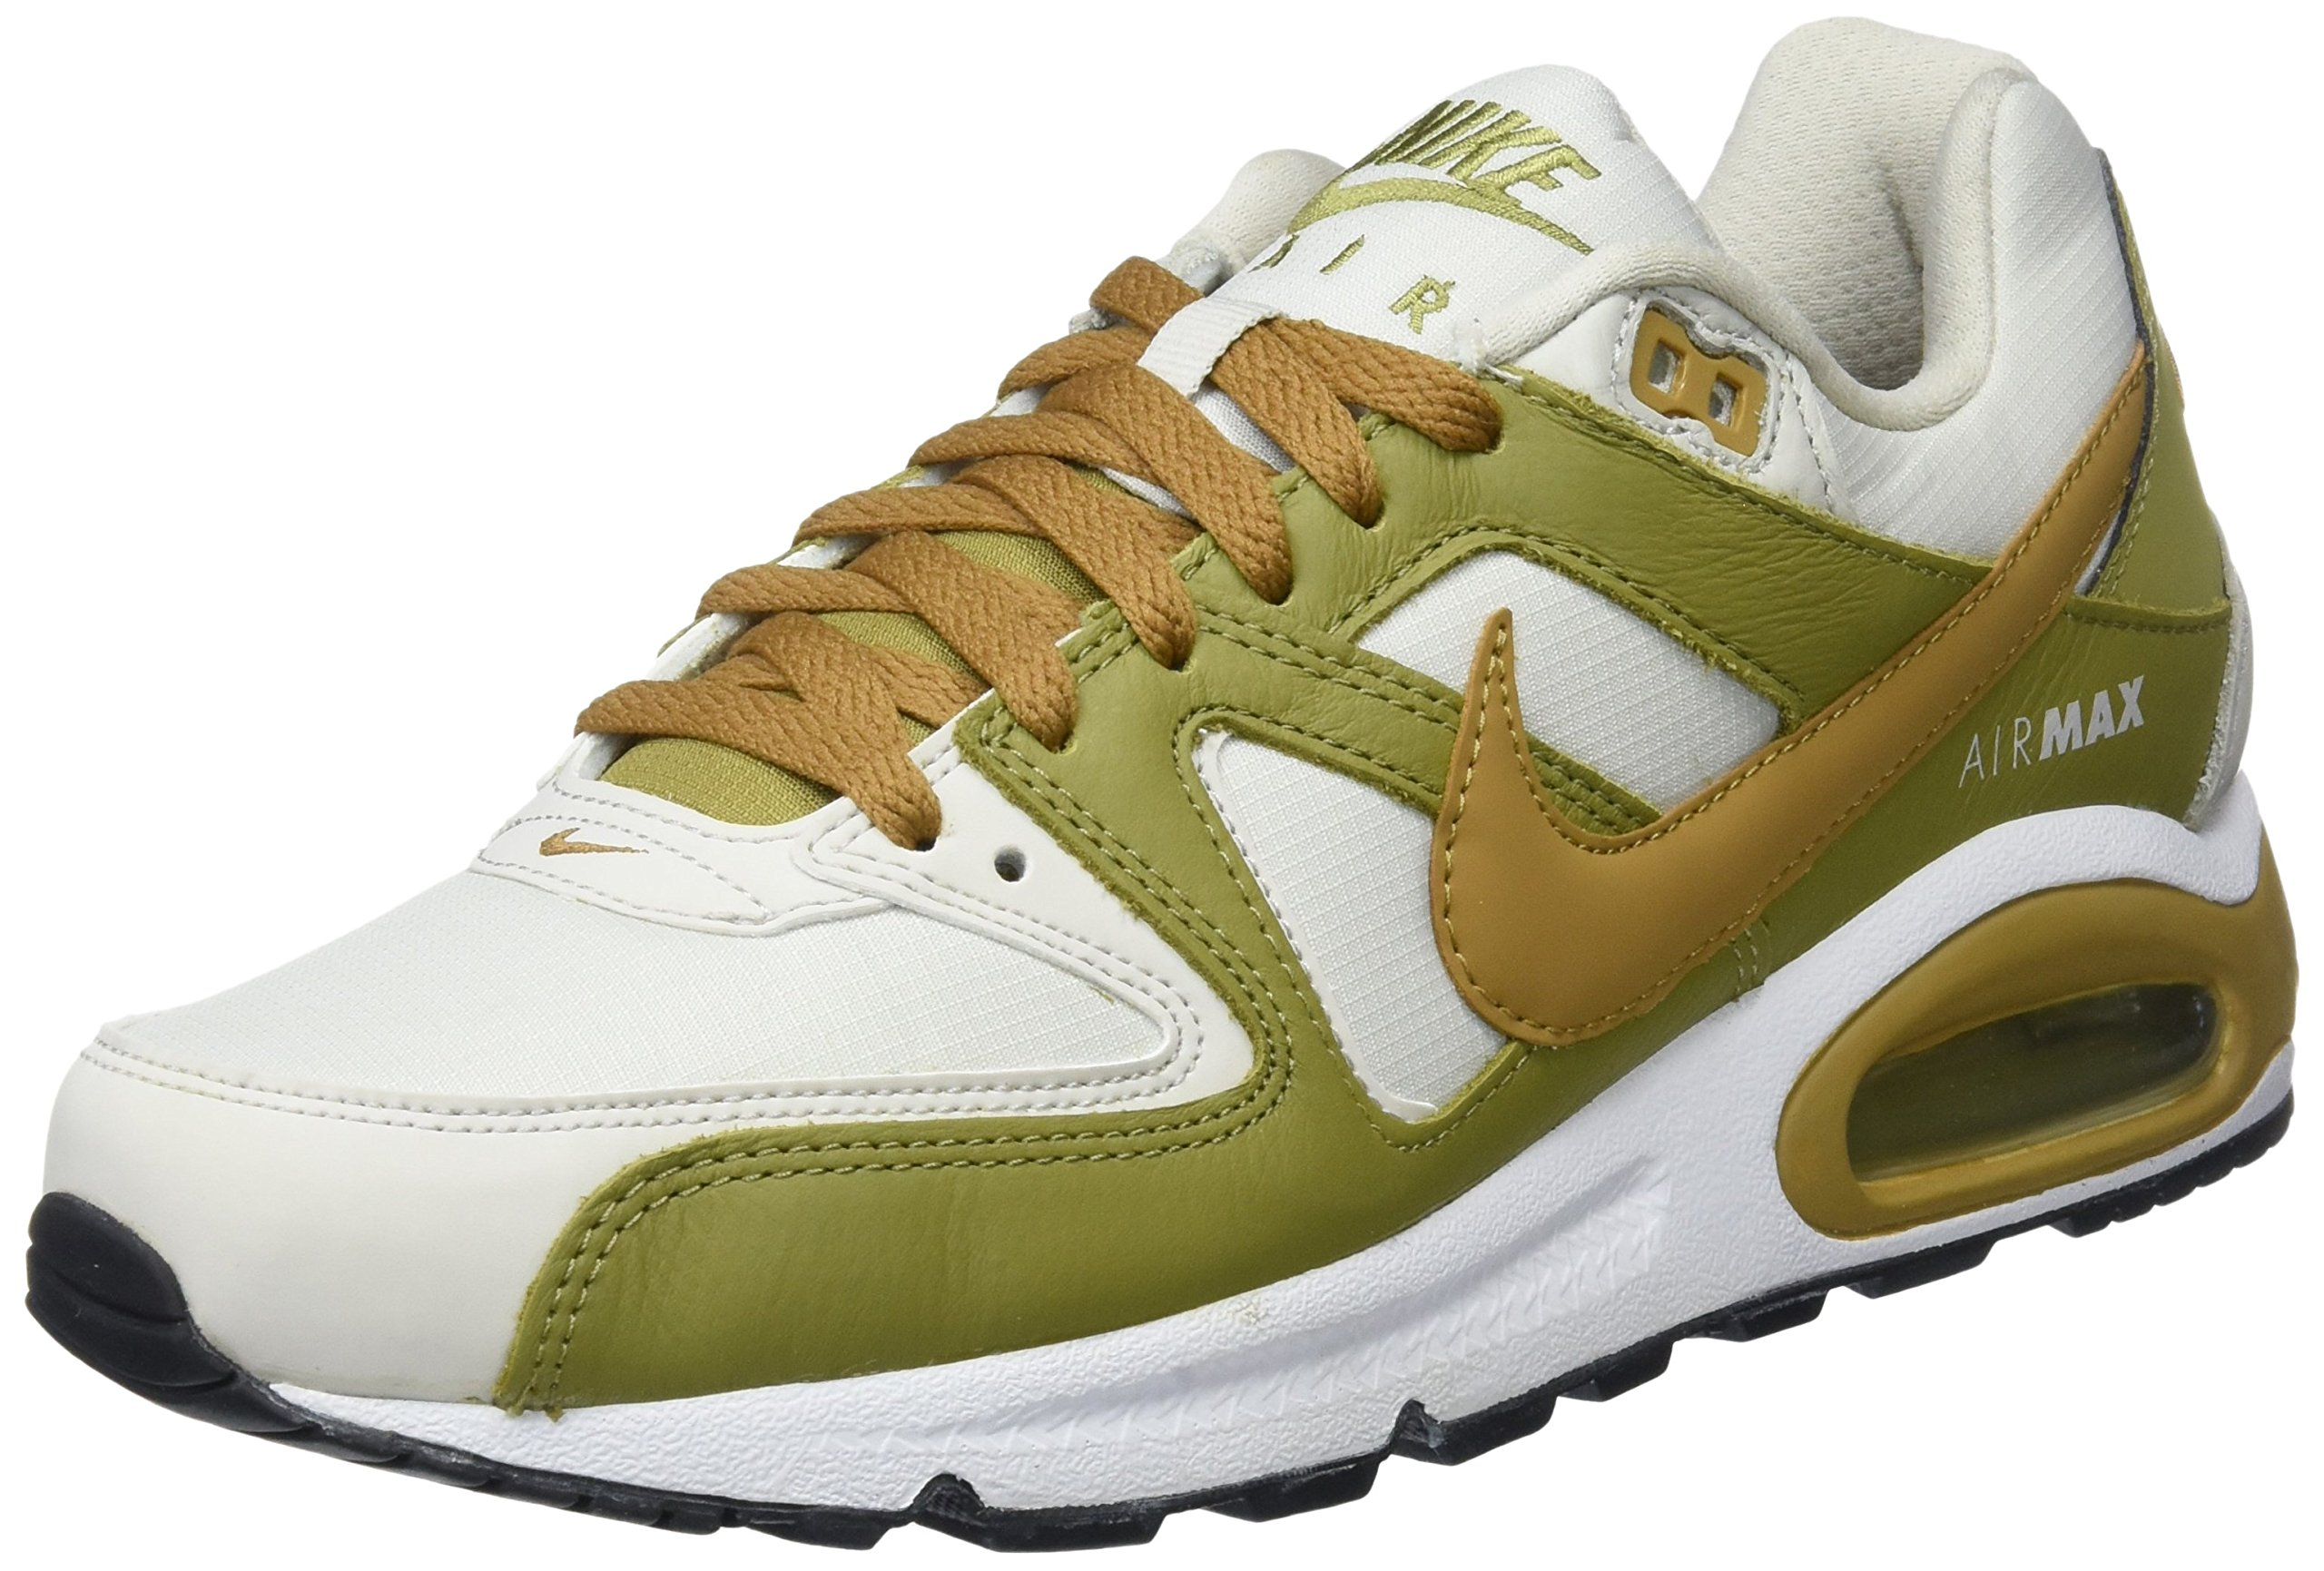 reputable site c07a1 55592 Nike Herren Air Max Command Sneaker Weiß product image